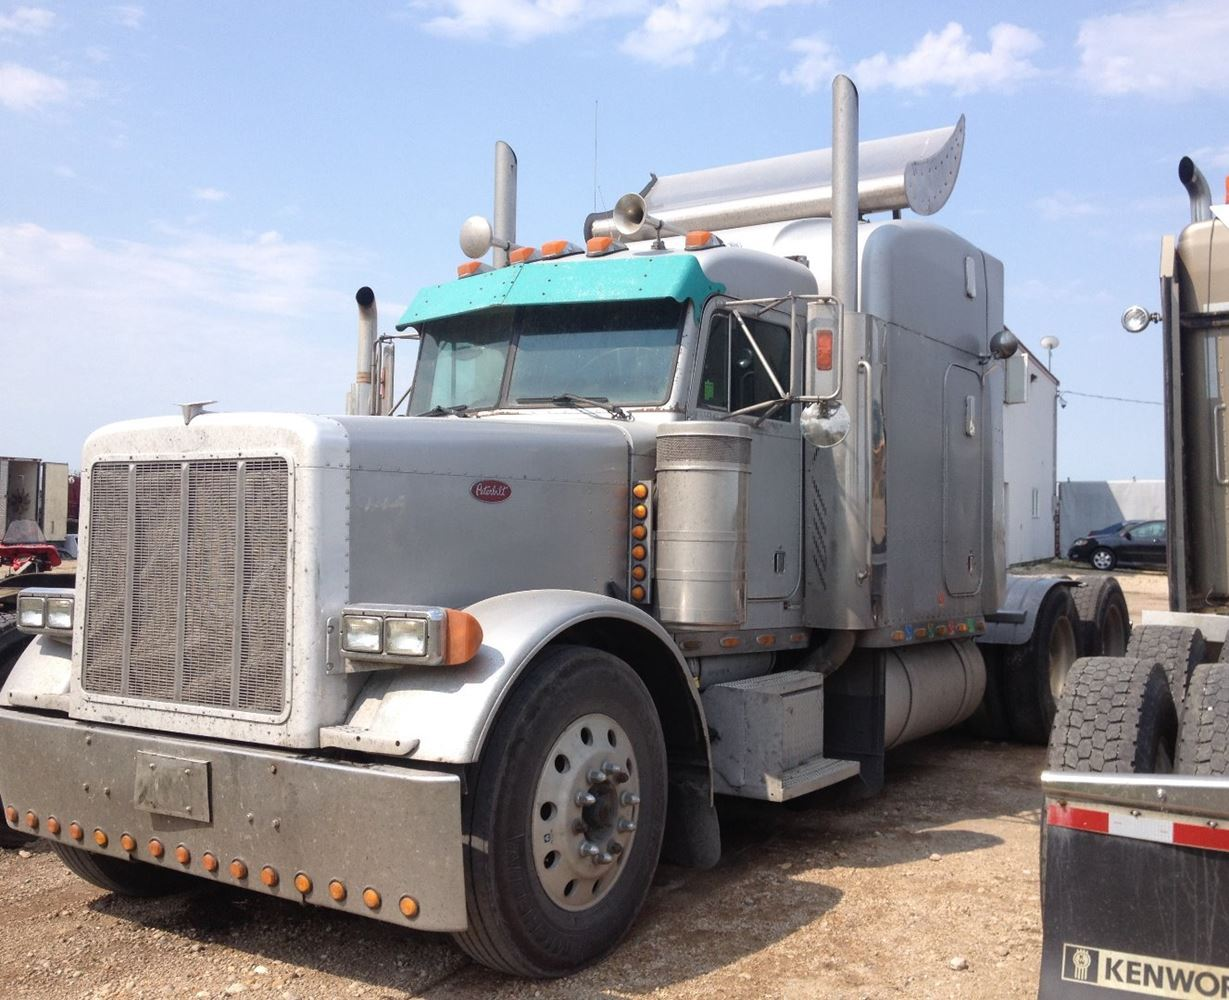 Wiring Harness For 379 Peterbilt Electrical Diagrams 2000 Diagram Photos Help Engine Free Download U2022 Oasis Dl Co 1994